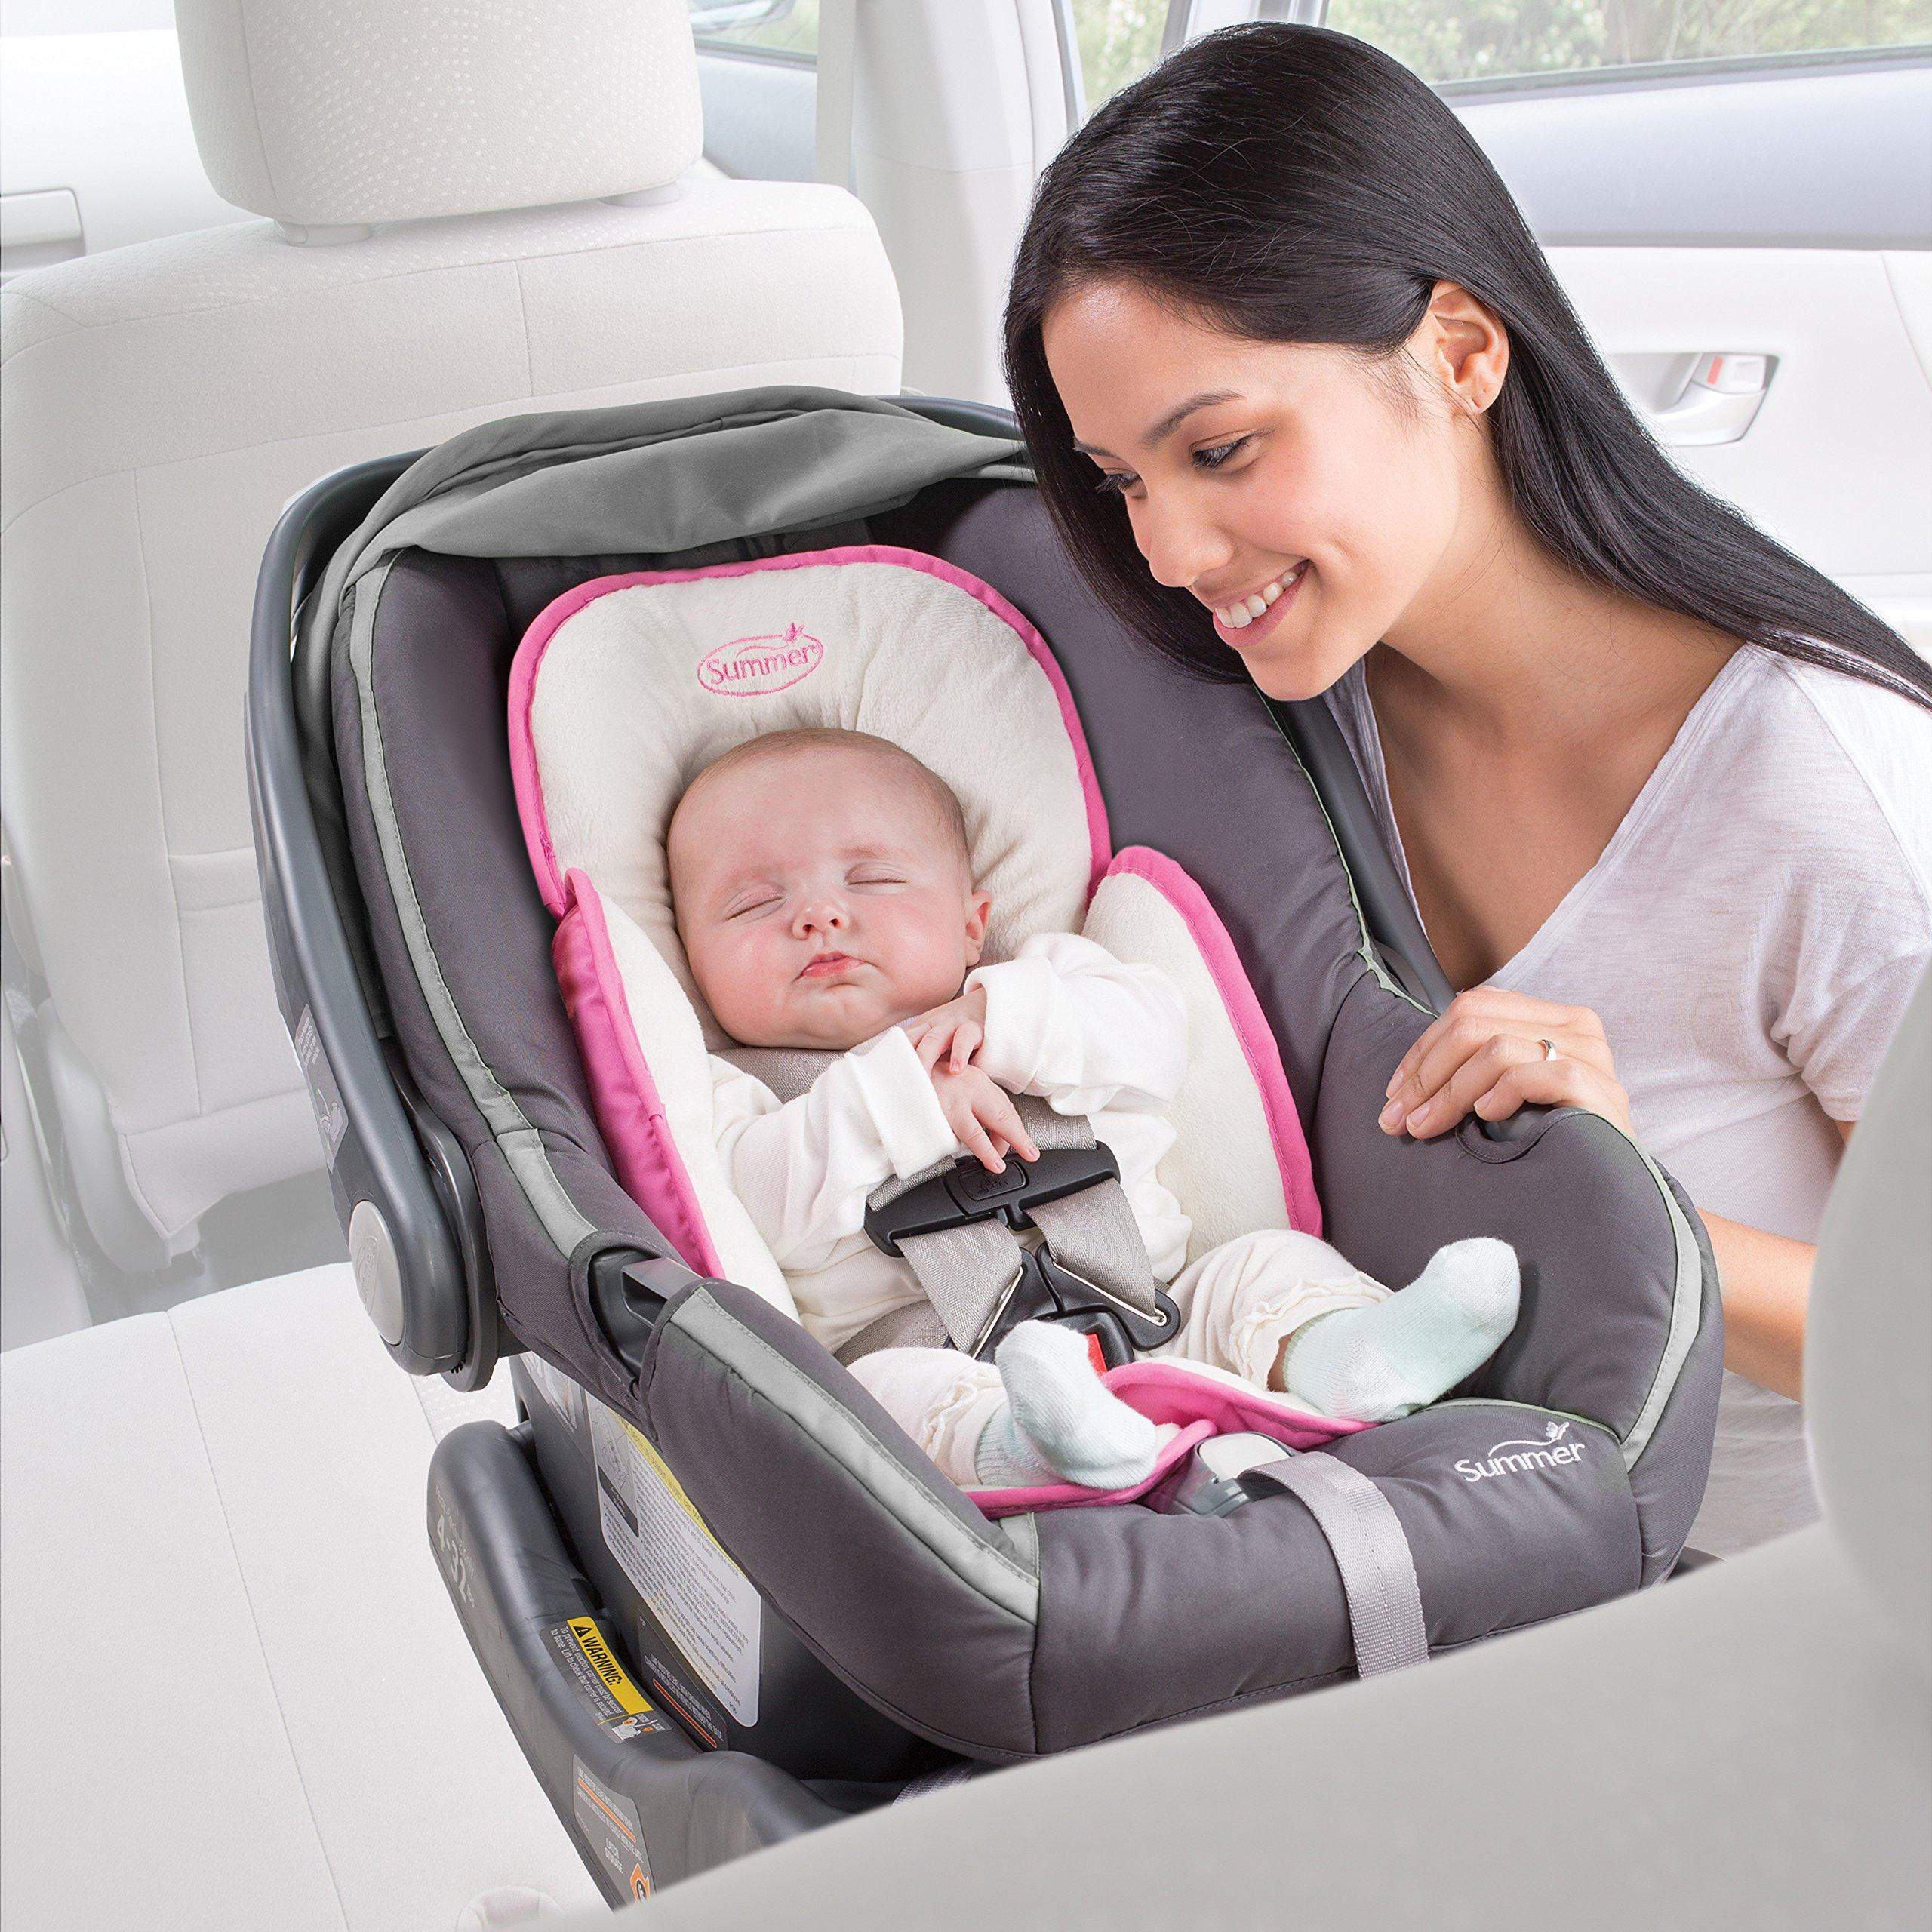 Summer-Infant-Snuzzler-Infant-Support-for-Car-Seats-and-Strollers-Velboa-Pink thumbnail 2